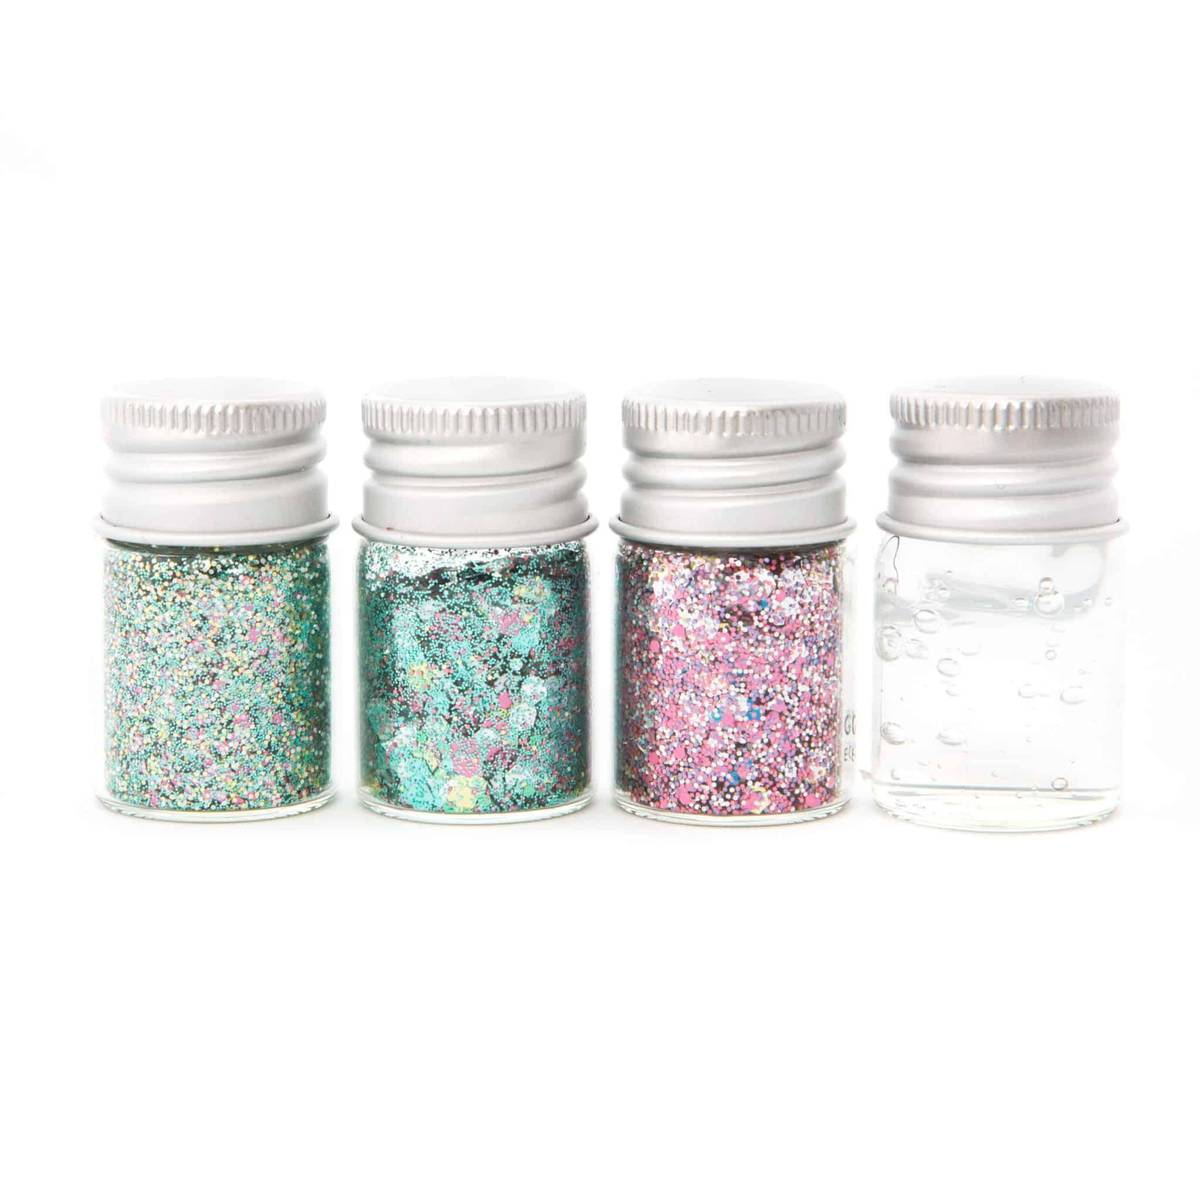 Glitter Eco Lovers Cotton Candy Party Kit